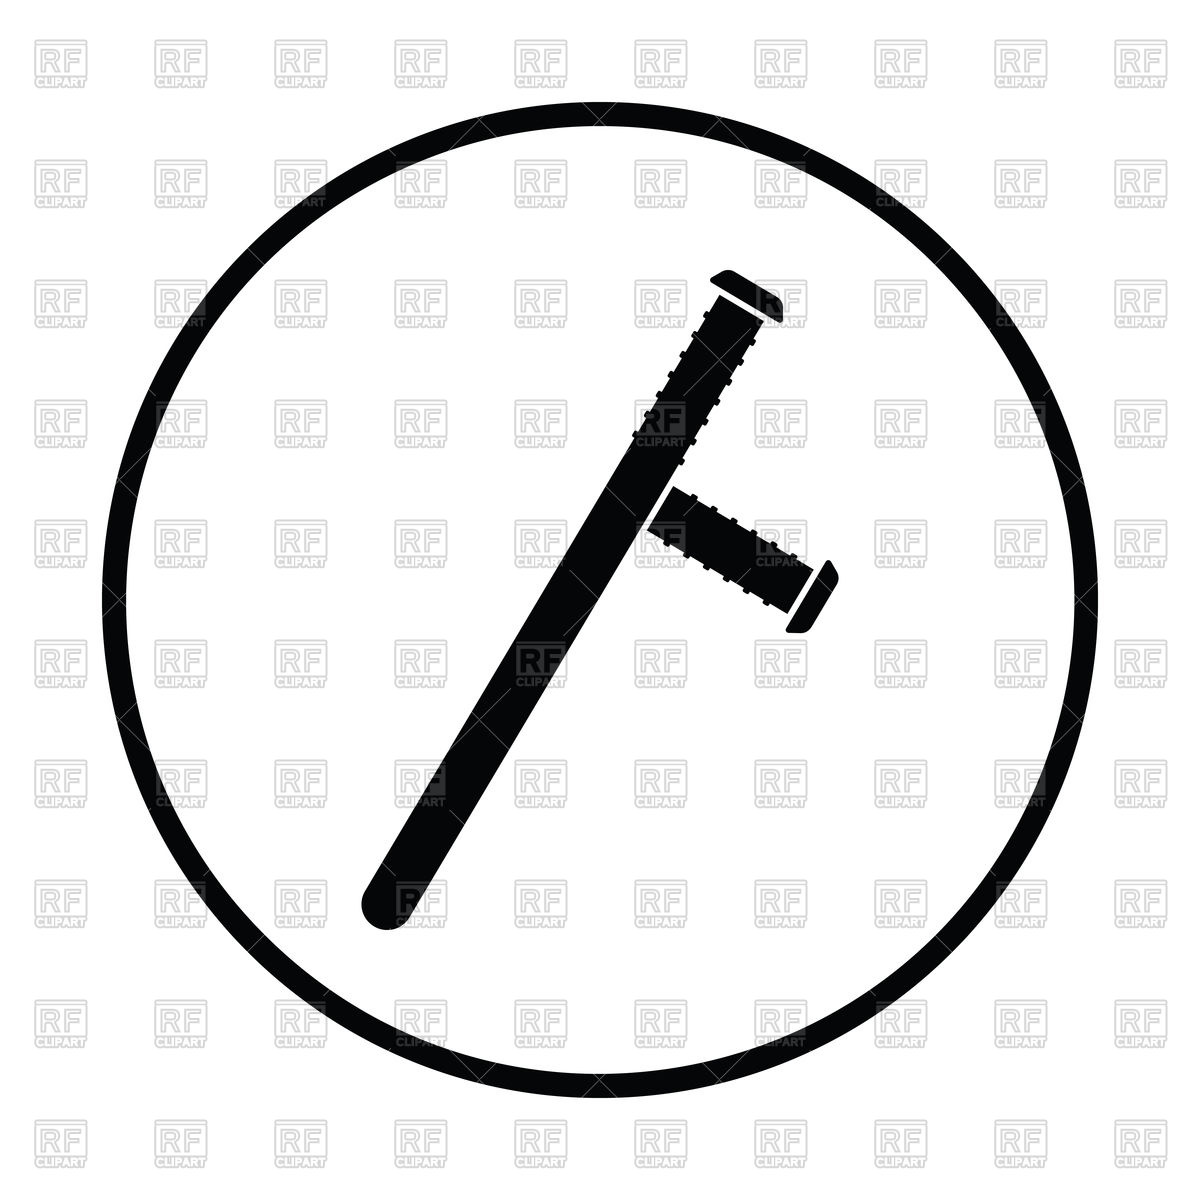 Silhouette of police baton icon Stock Vector Image.